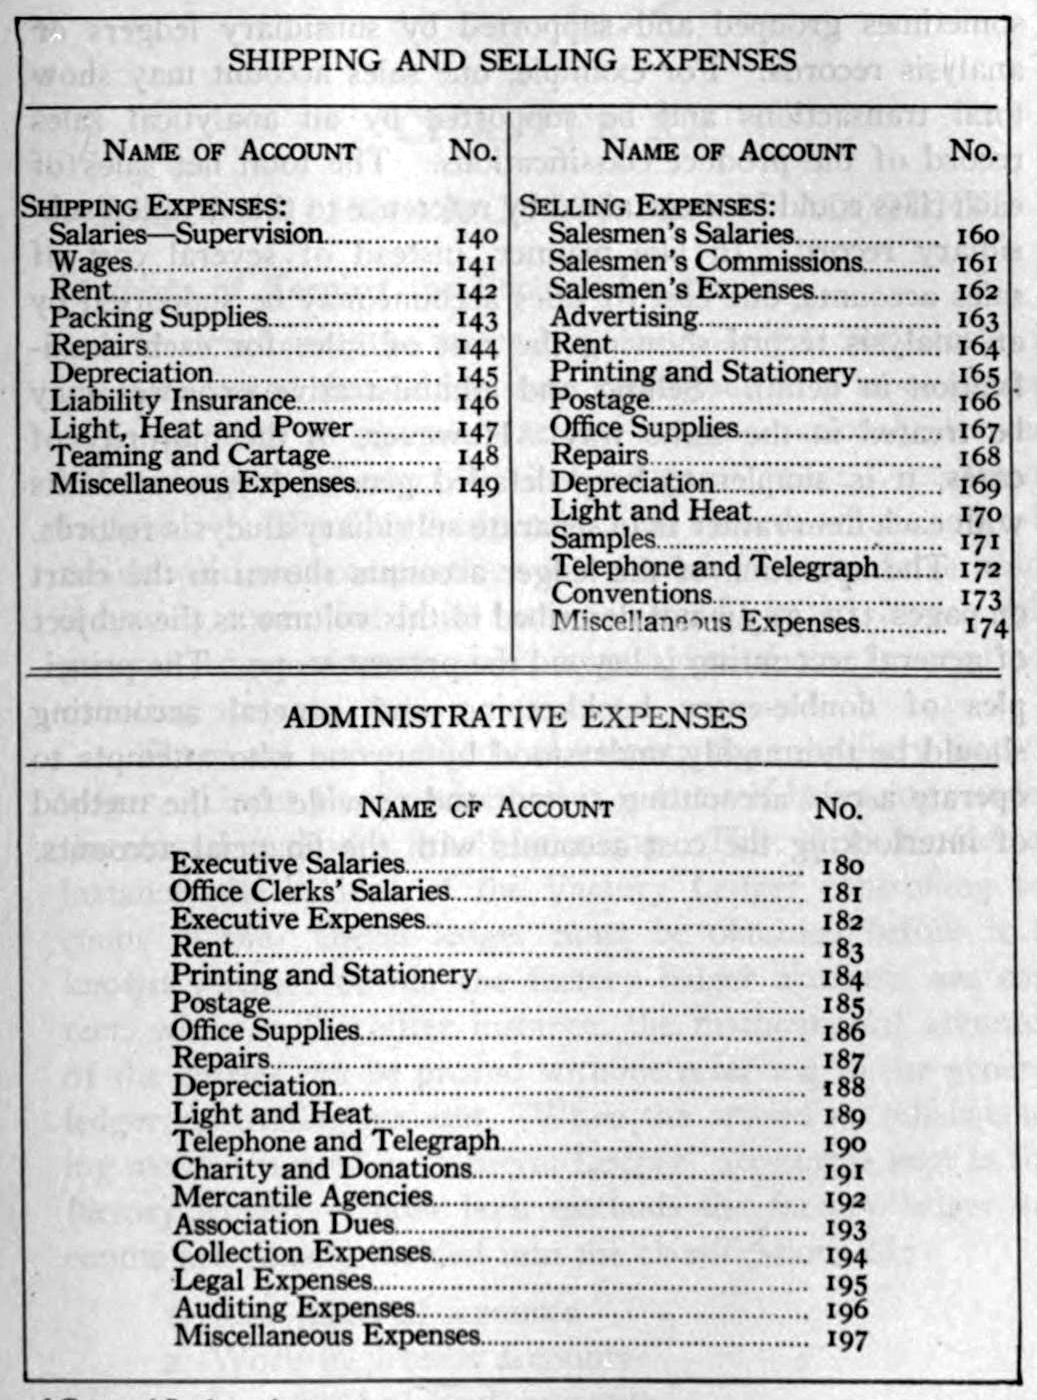 Postage Rate Chart: Classification chart of General Ledger Accounts 1919 (2).jpg ,Chart